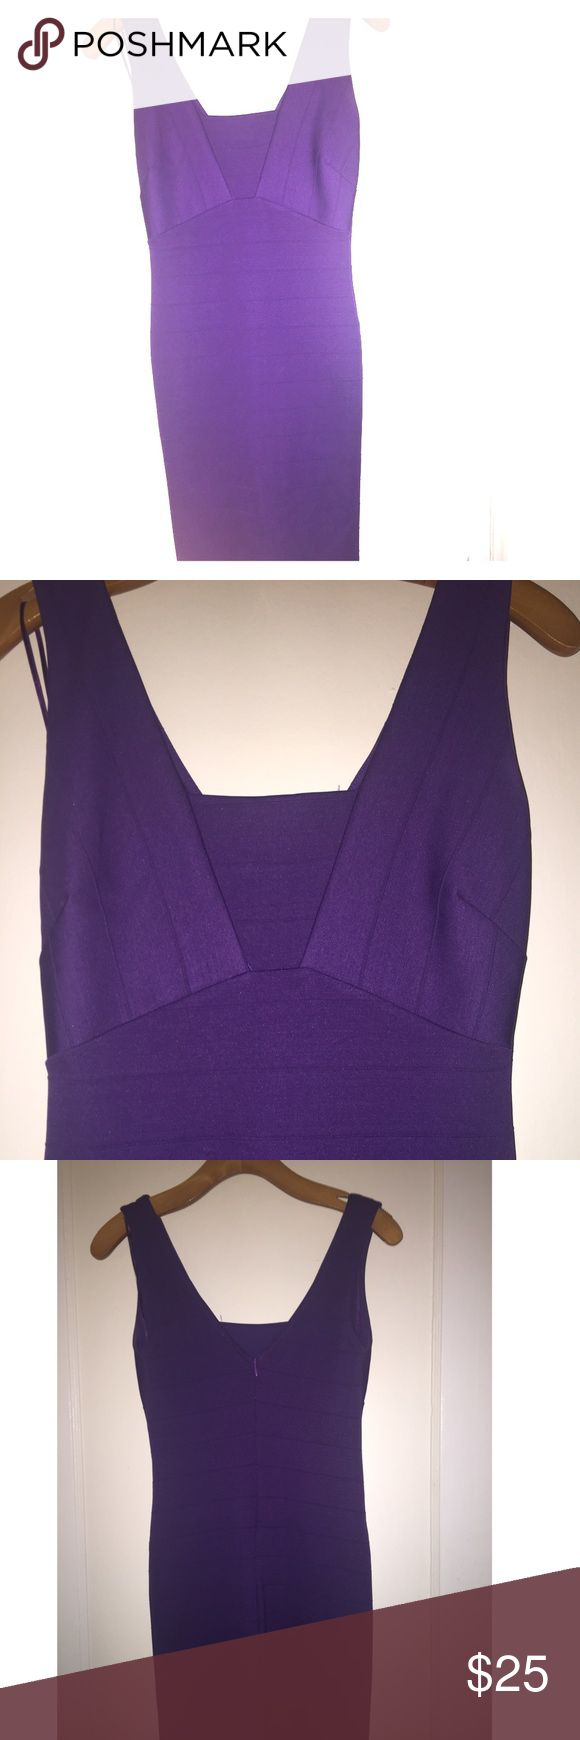 Purple Bandage Bodycon Dress Bodycon Bandage Dress from Jane London. UK size 10. Fits US 6-8 Dresses Mini